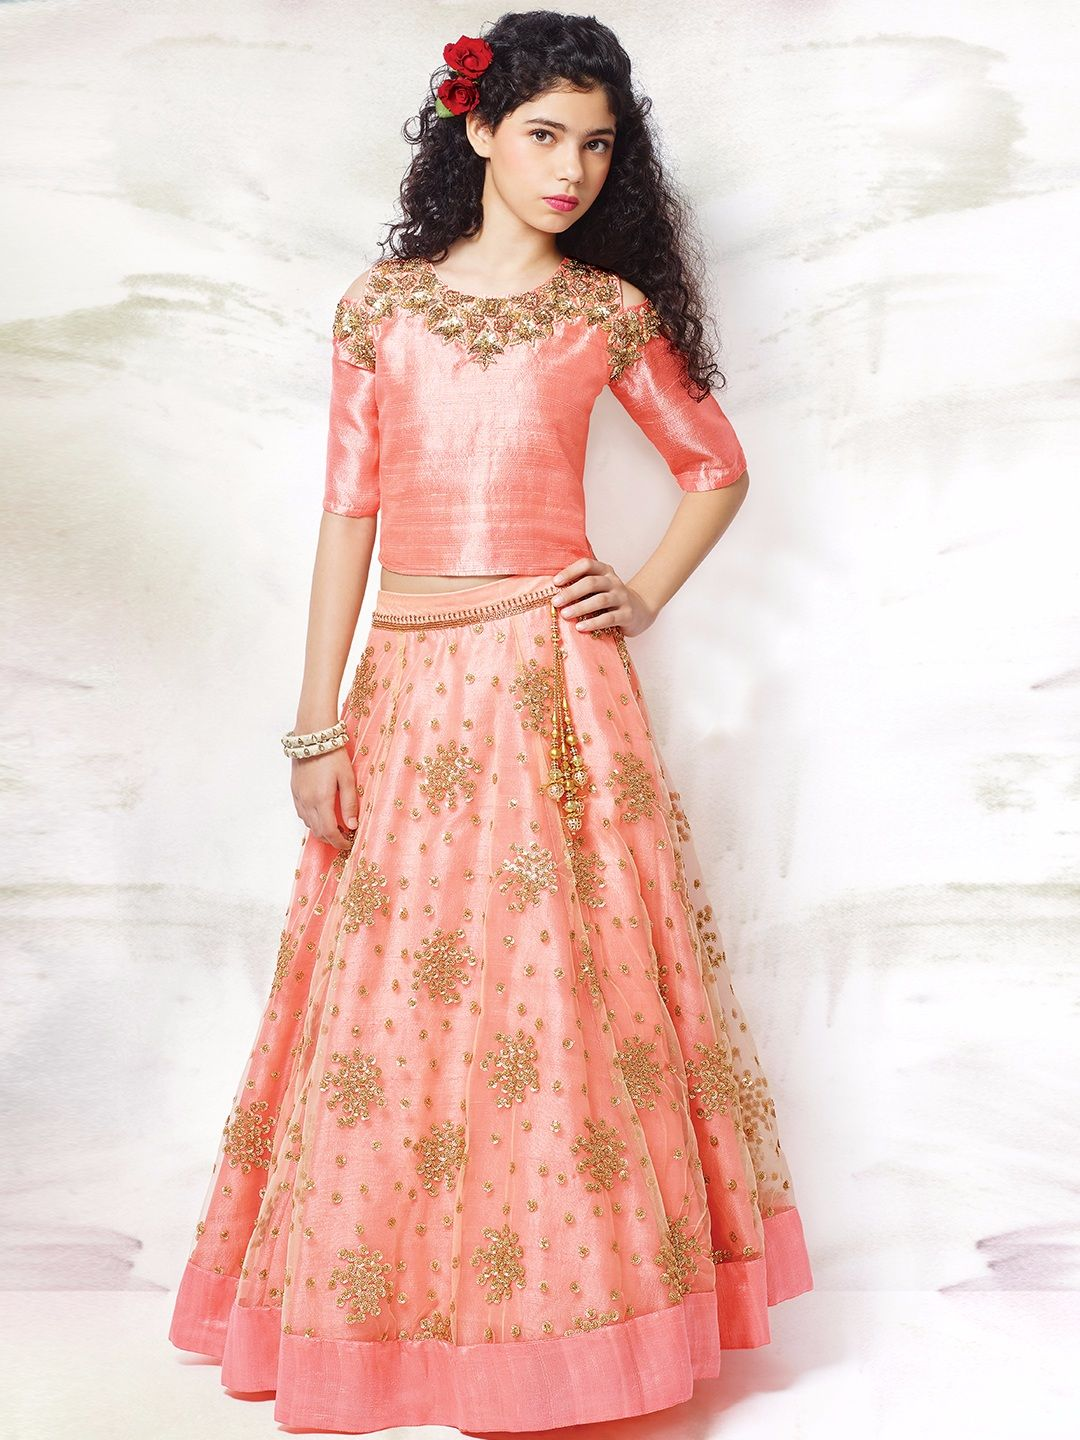 3f5a79c7b0 Shop G3 Exclusive pink net and raw silk wedding wear circular girls lehenga  choli online from G3fashion India. Brand - G3, Product code - G3-GCS0304,  ...